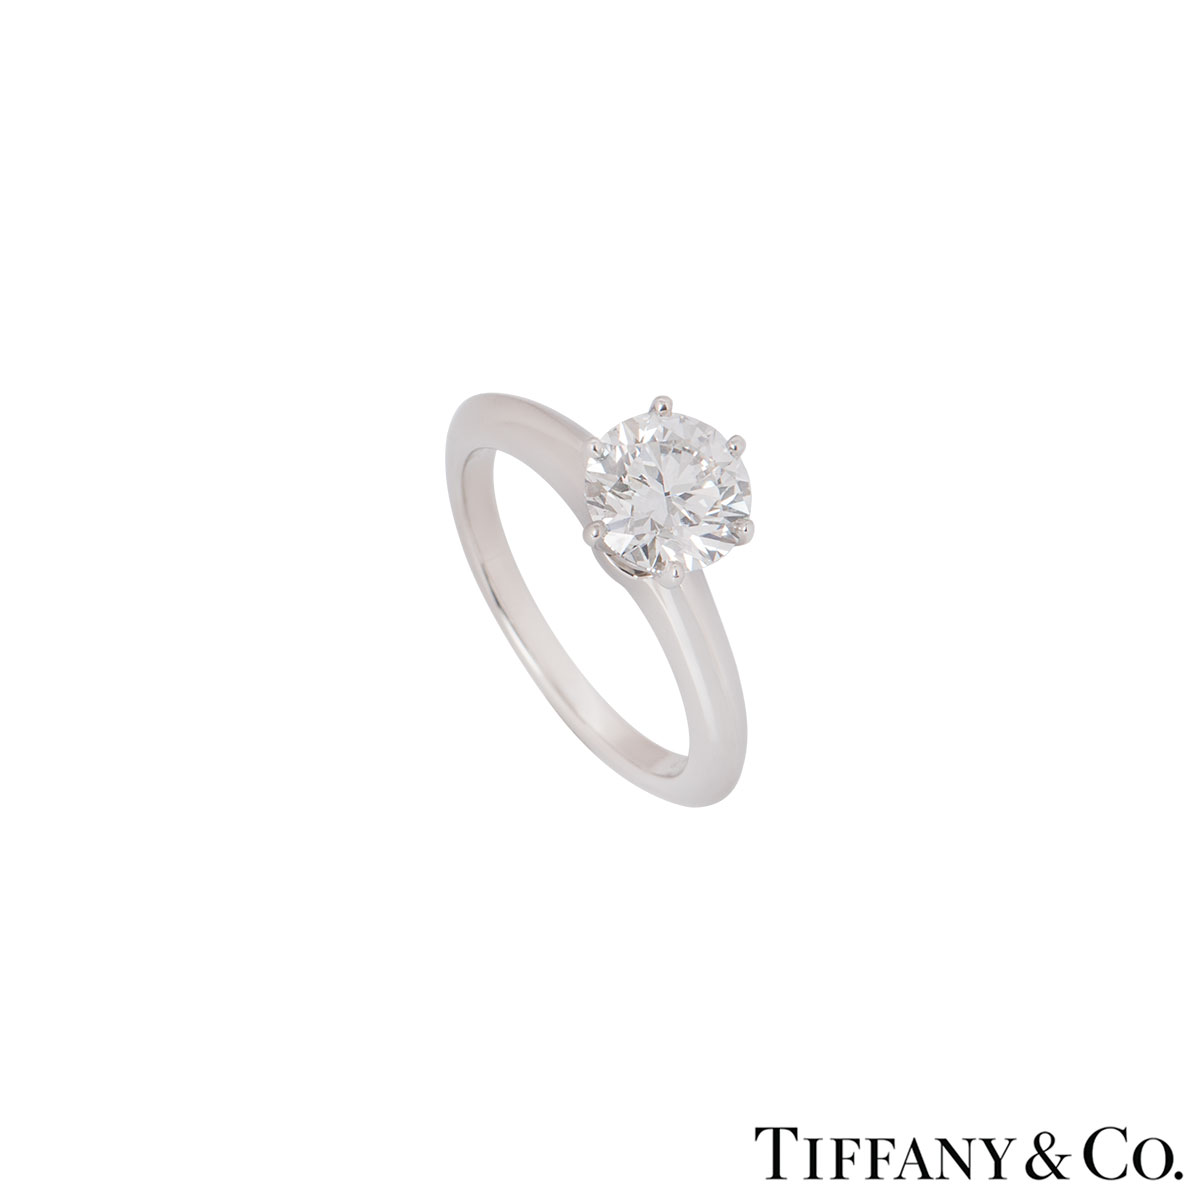 Tiffany & Co. Platinum Diamond Setting Ring 1.42ct G/VS2 XXX